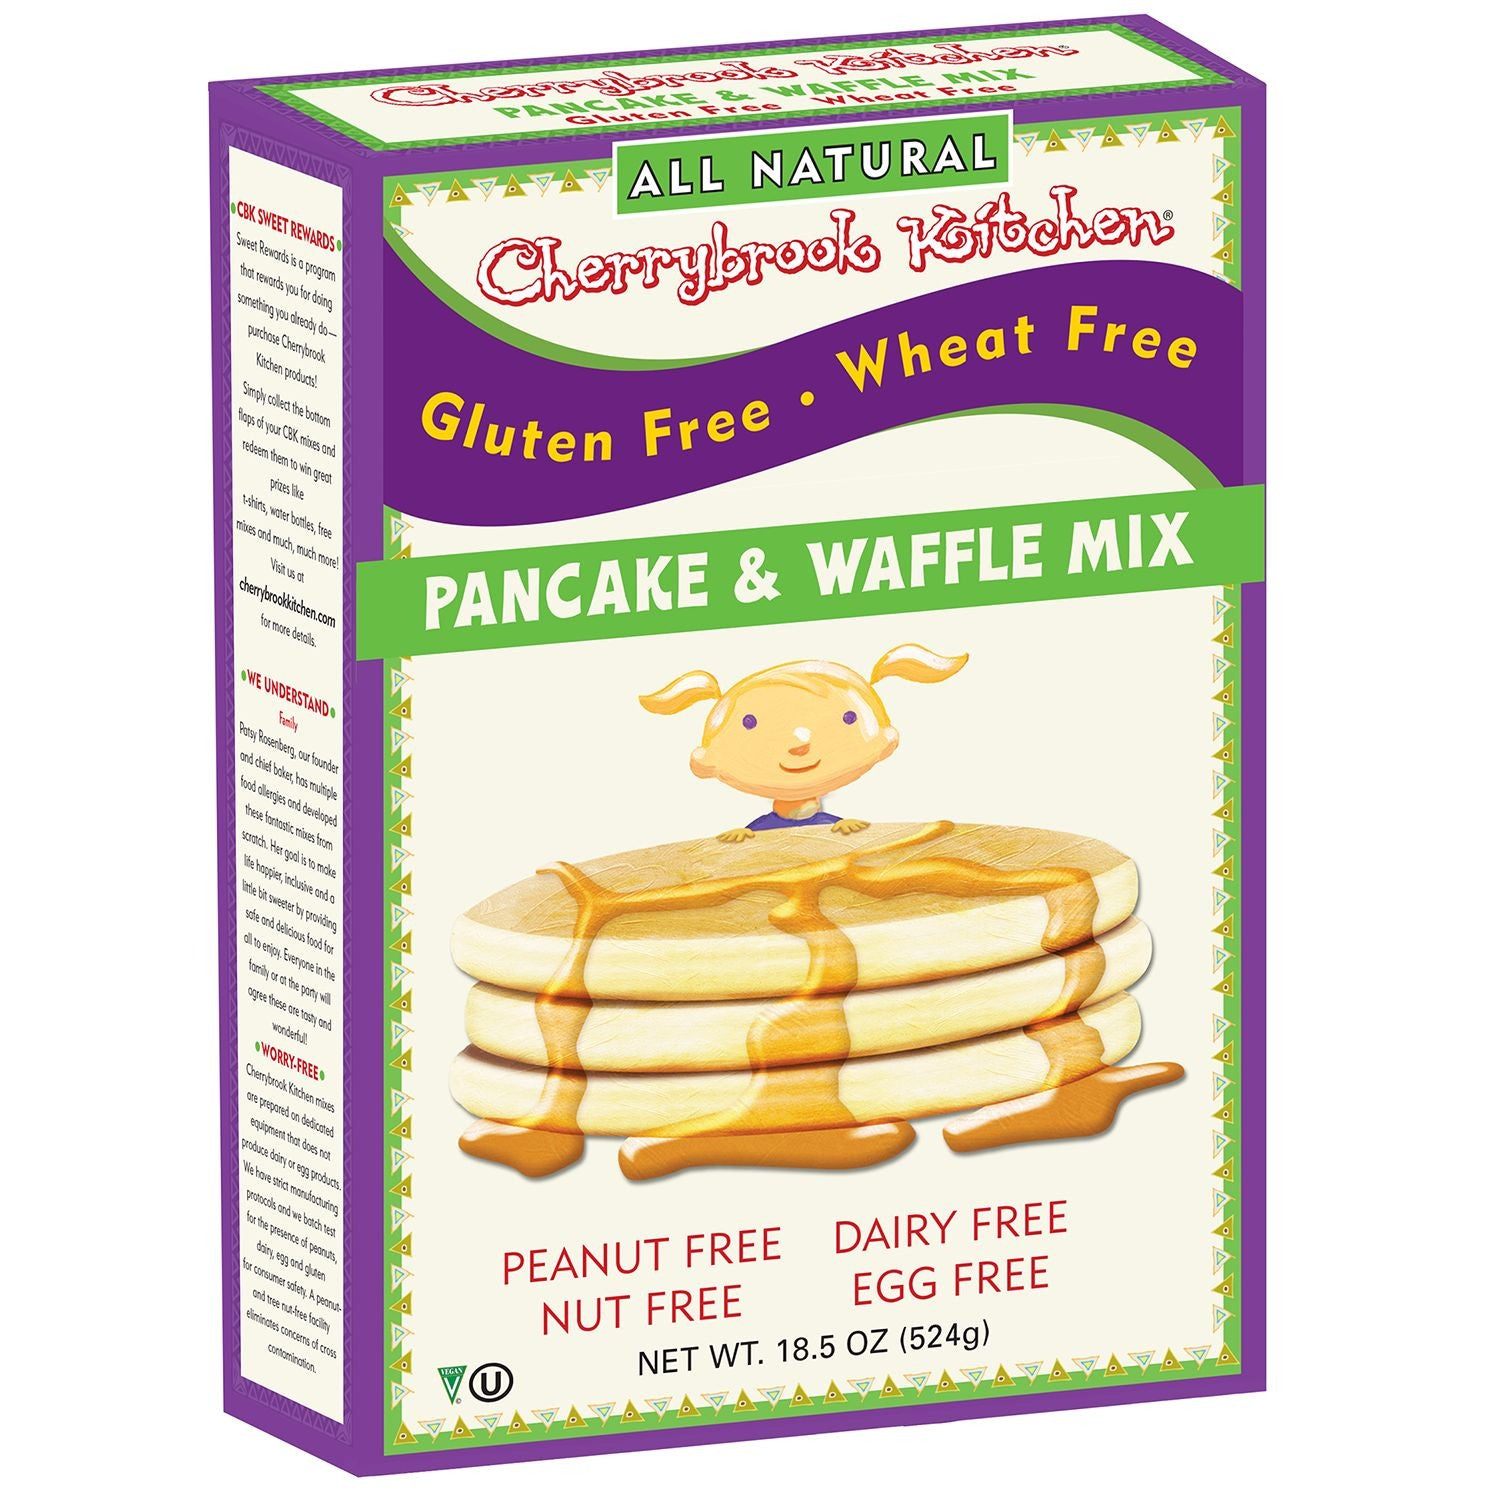 Cherrybrook Kitchens Gluten Free Pancake & Waffle Mix, 18 Oz (Pack of 6)